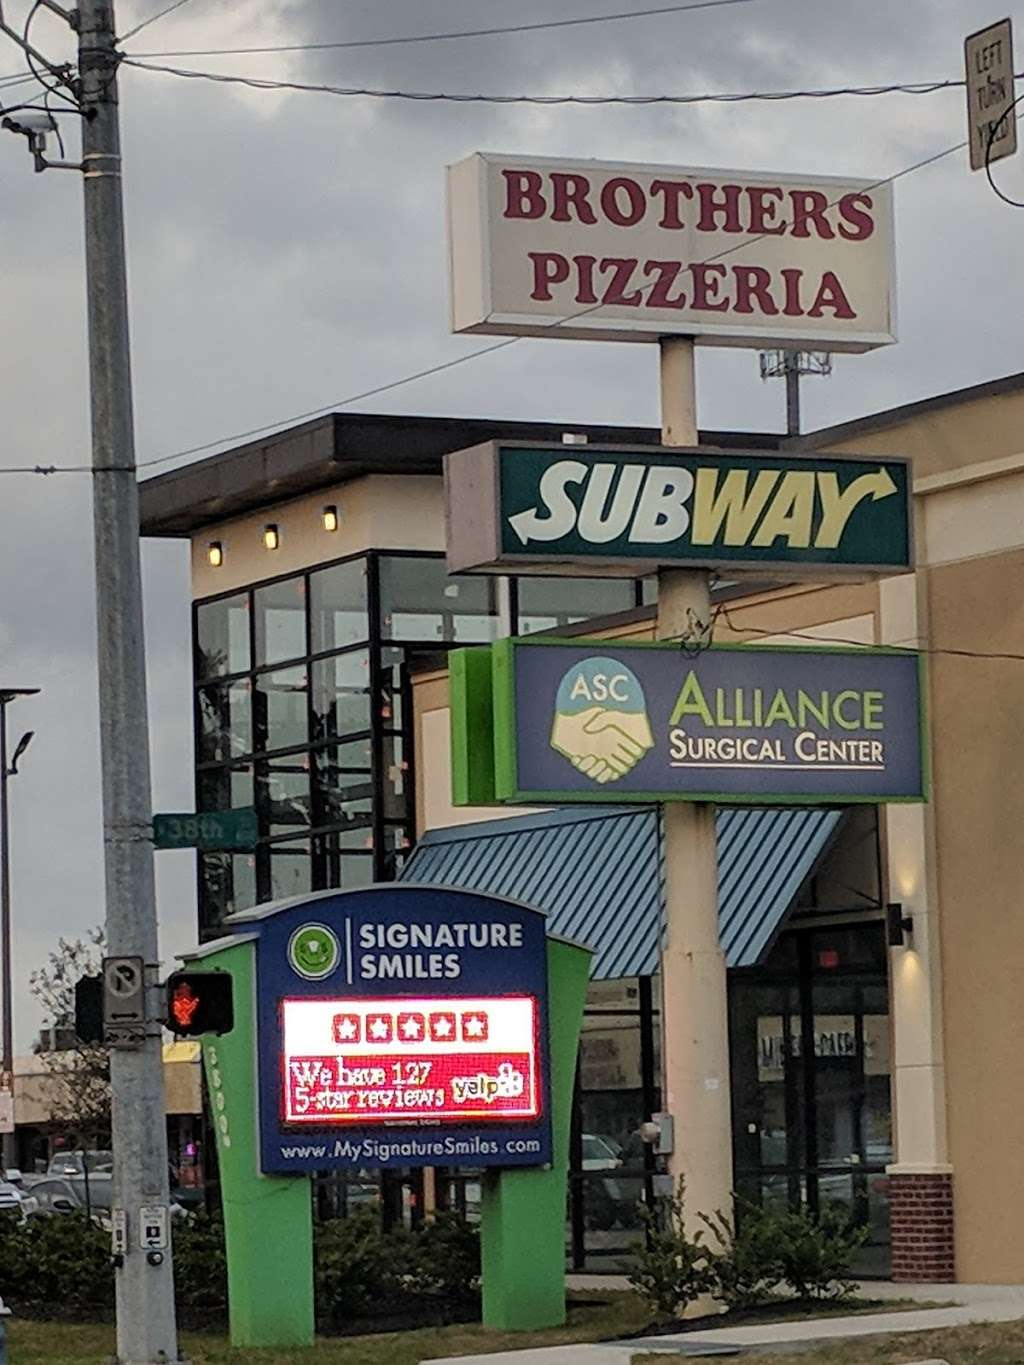 Subway - restaurant  | Photo 3 of 4 | Address: 3806 N Shepherd Rd, Houston, TX 77018, USA | Phone: (713) 695-3575